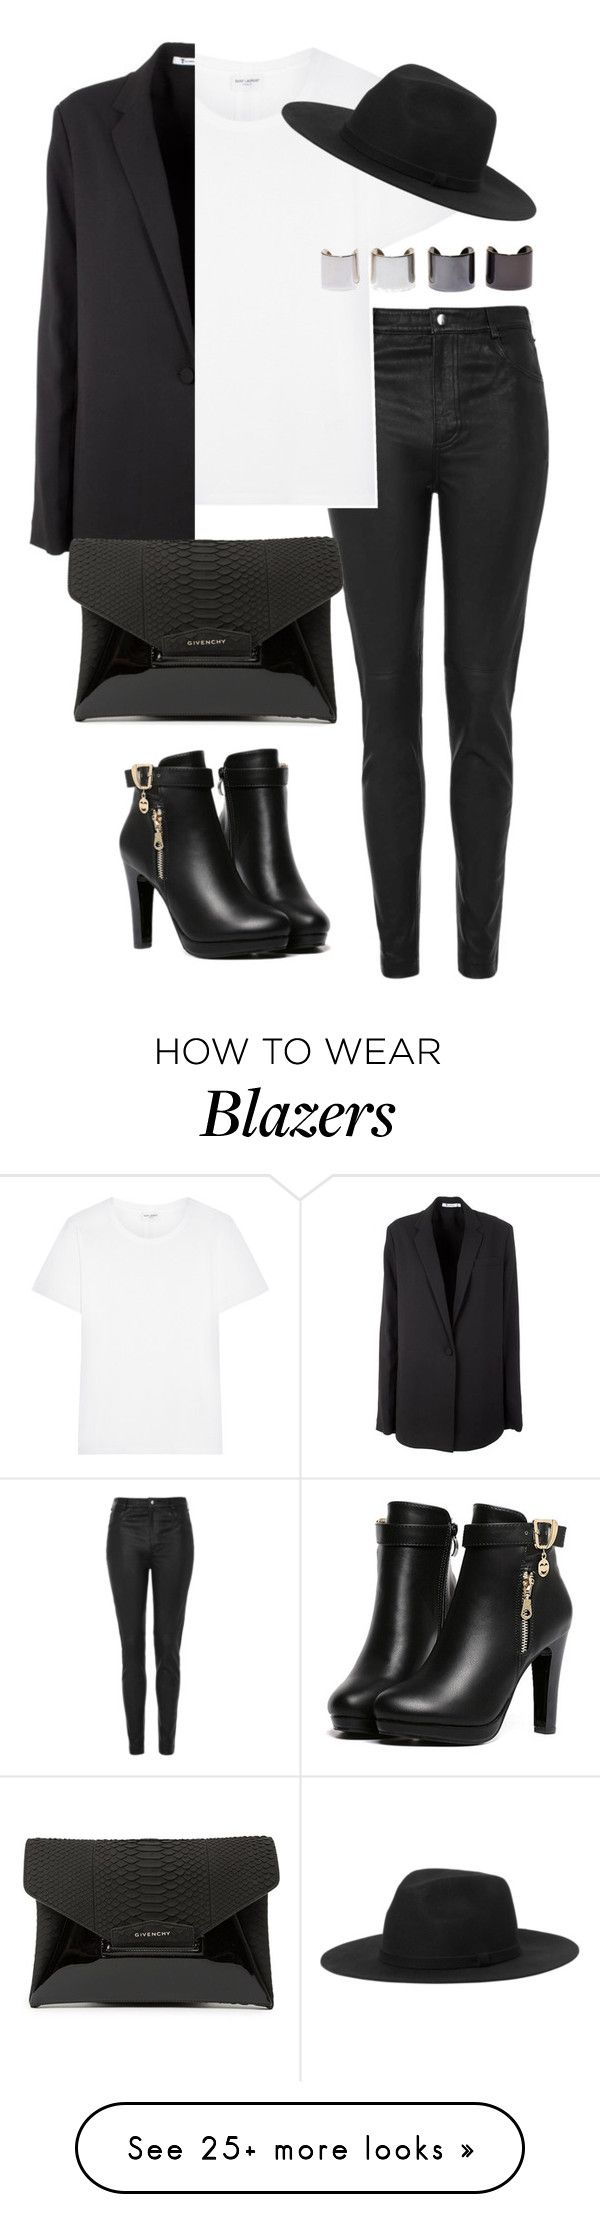 """Untitled #1832"" by officialnat on Polyvore featuring Topshop, Yves Saint Laurent, T By Alexander Wang, Givenchy, Monki and Luv Aj"